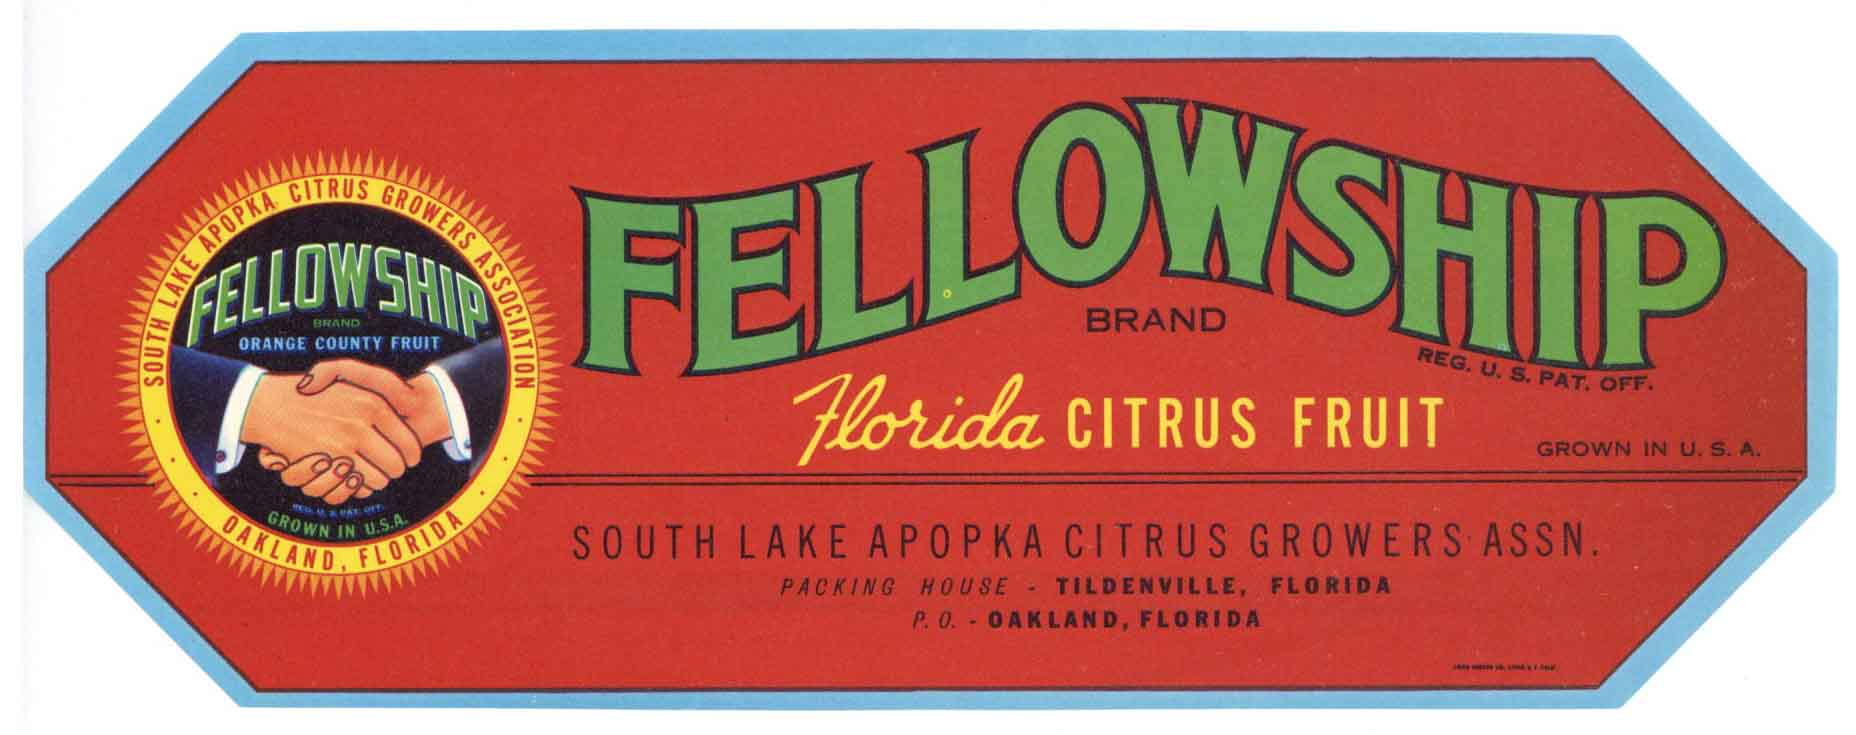 Fellowship Brand Vintage Florida Citrus Crate Label, s